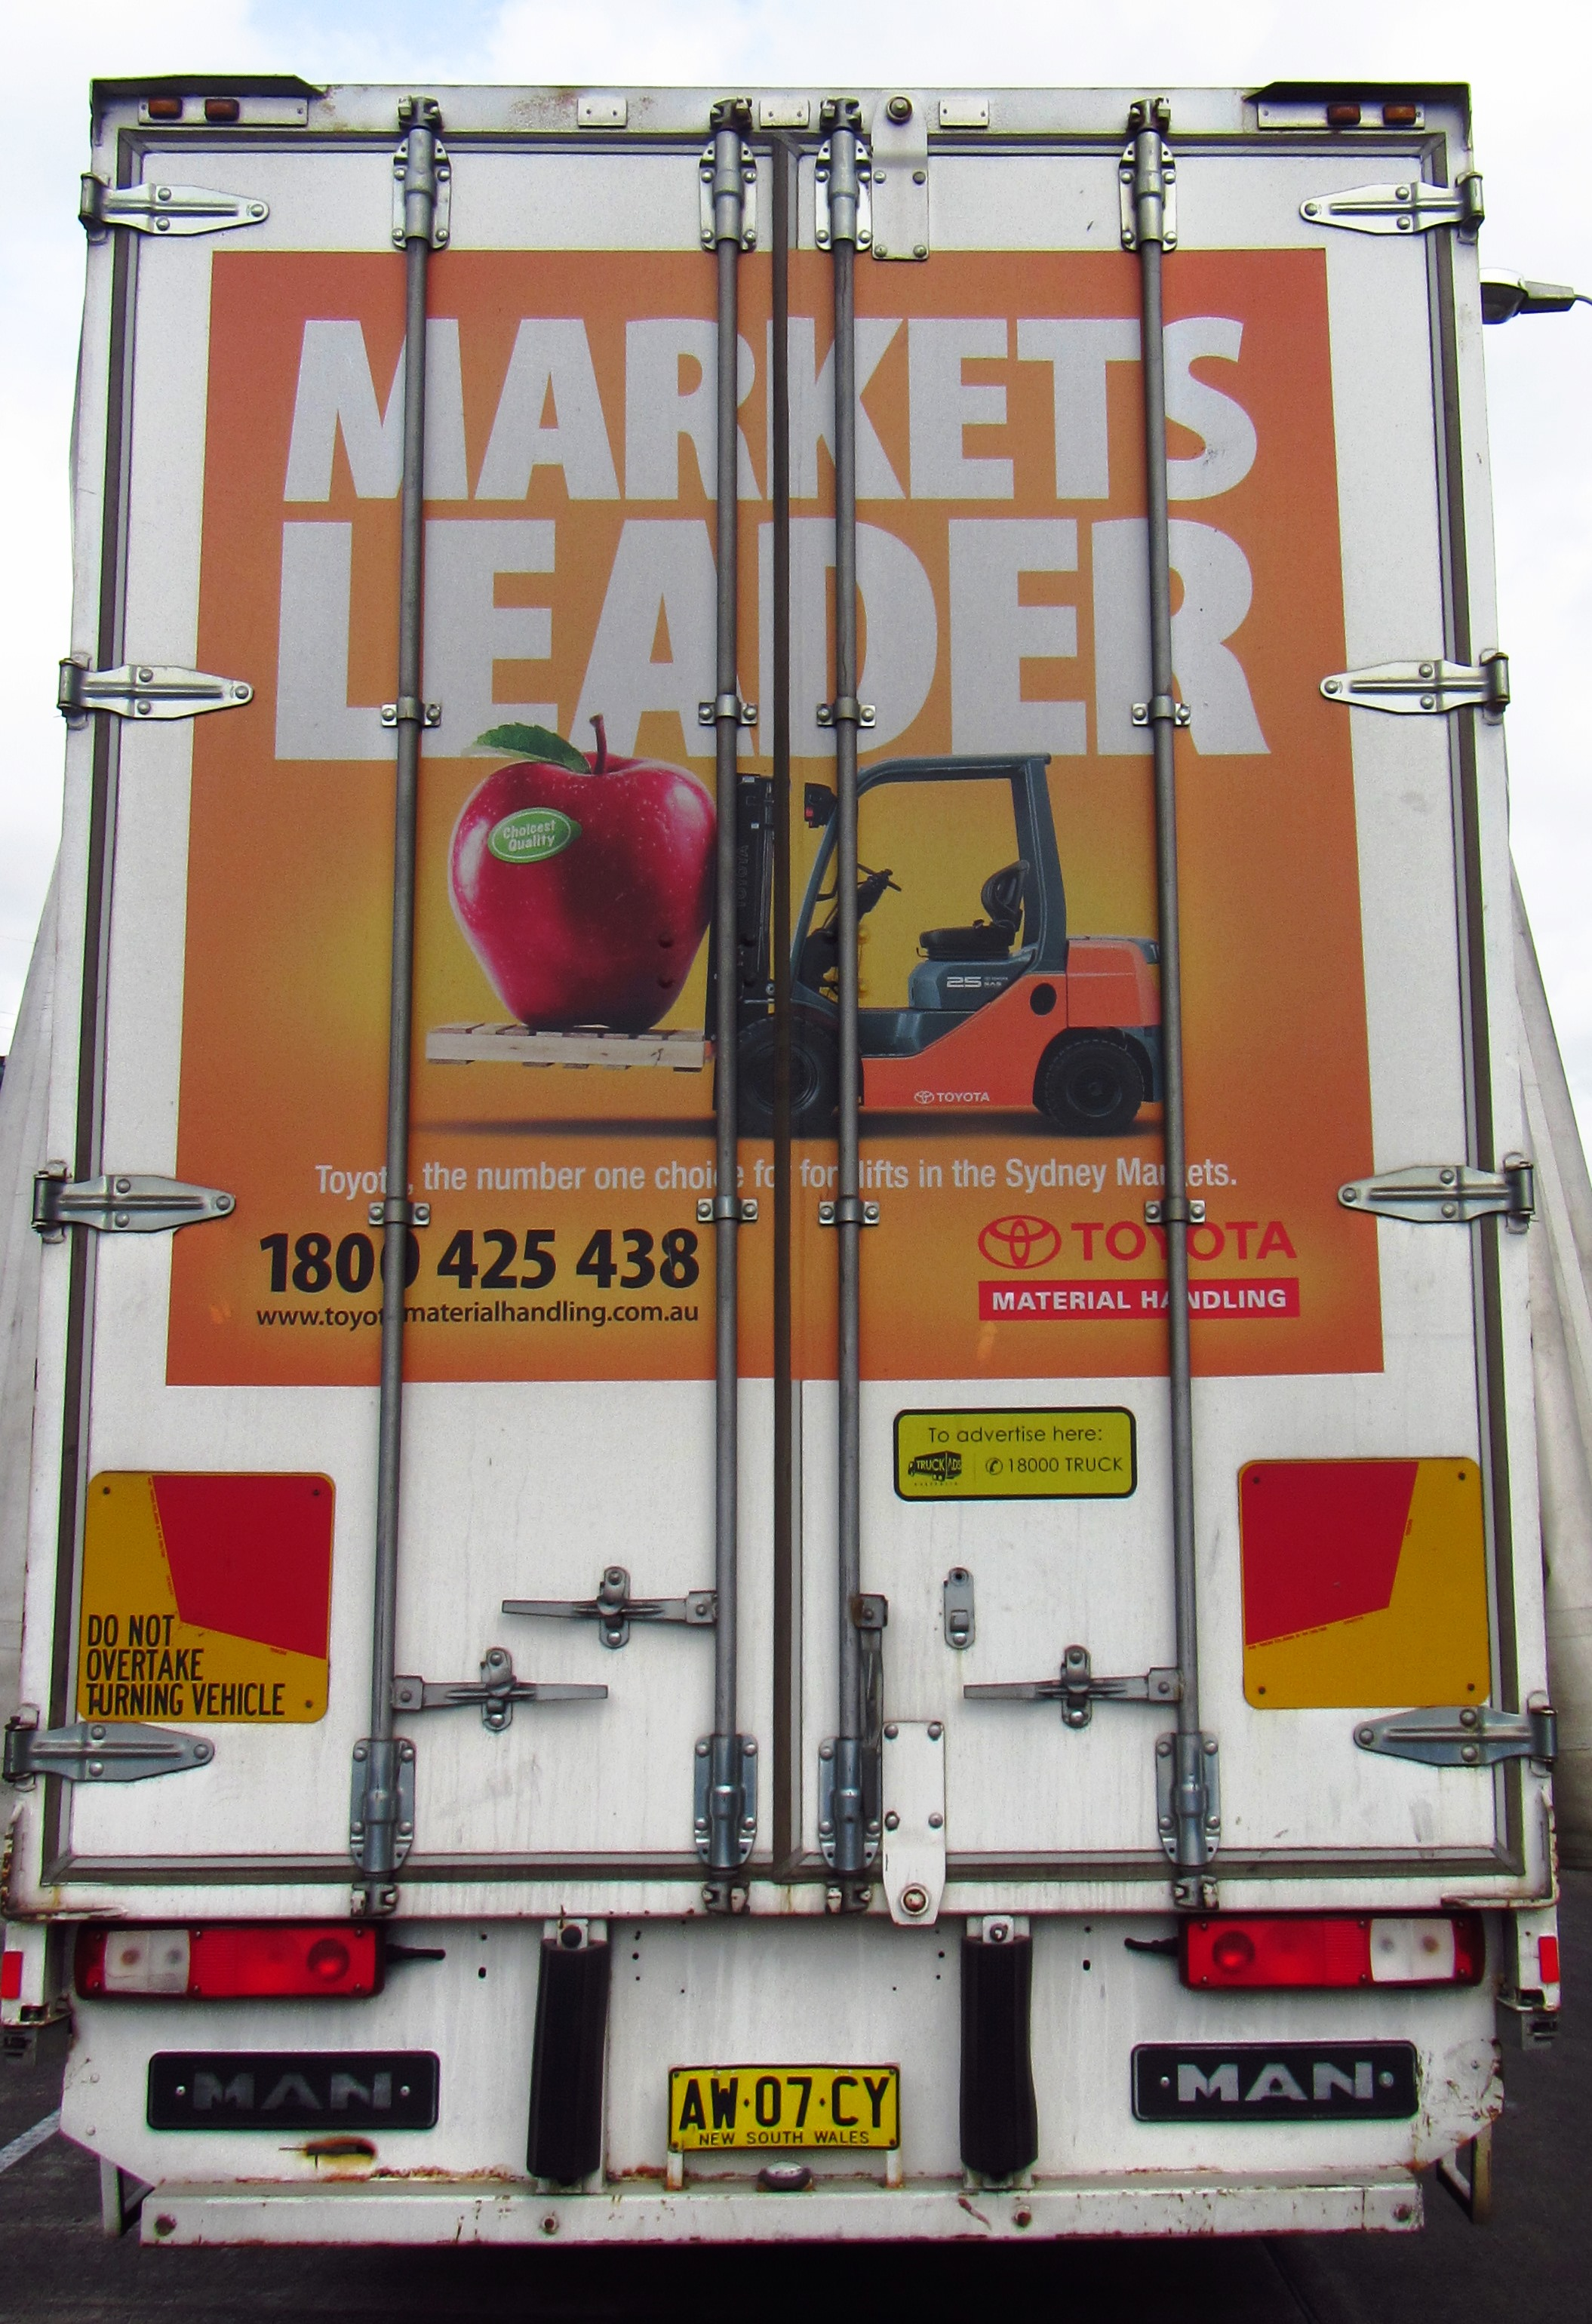 Truck advertising. TMHA Toyota Material Handling Australia TruckBack on SX rigid. Straight application. Markets Leader campaign. Tautliner. Flemington markets.